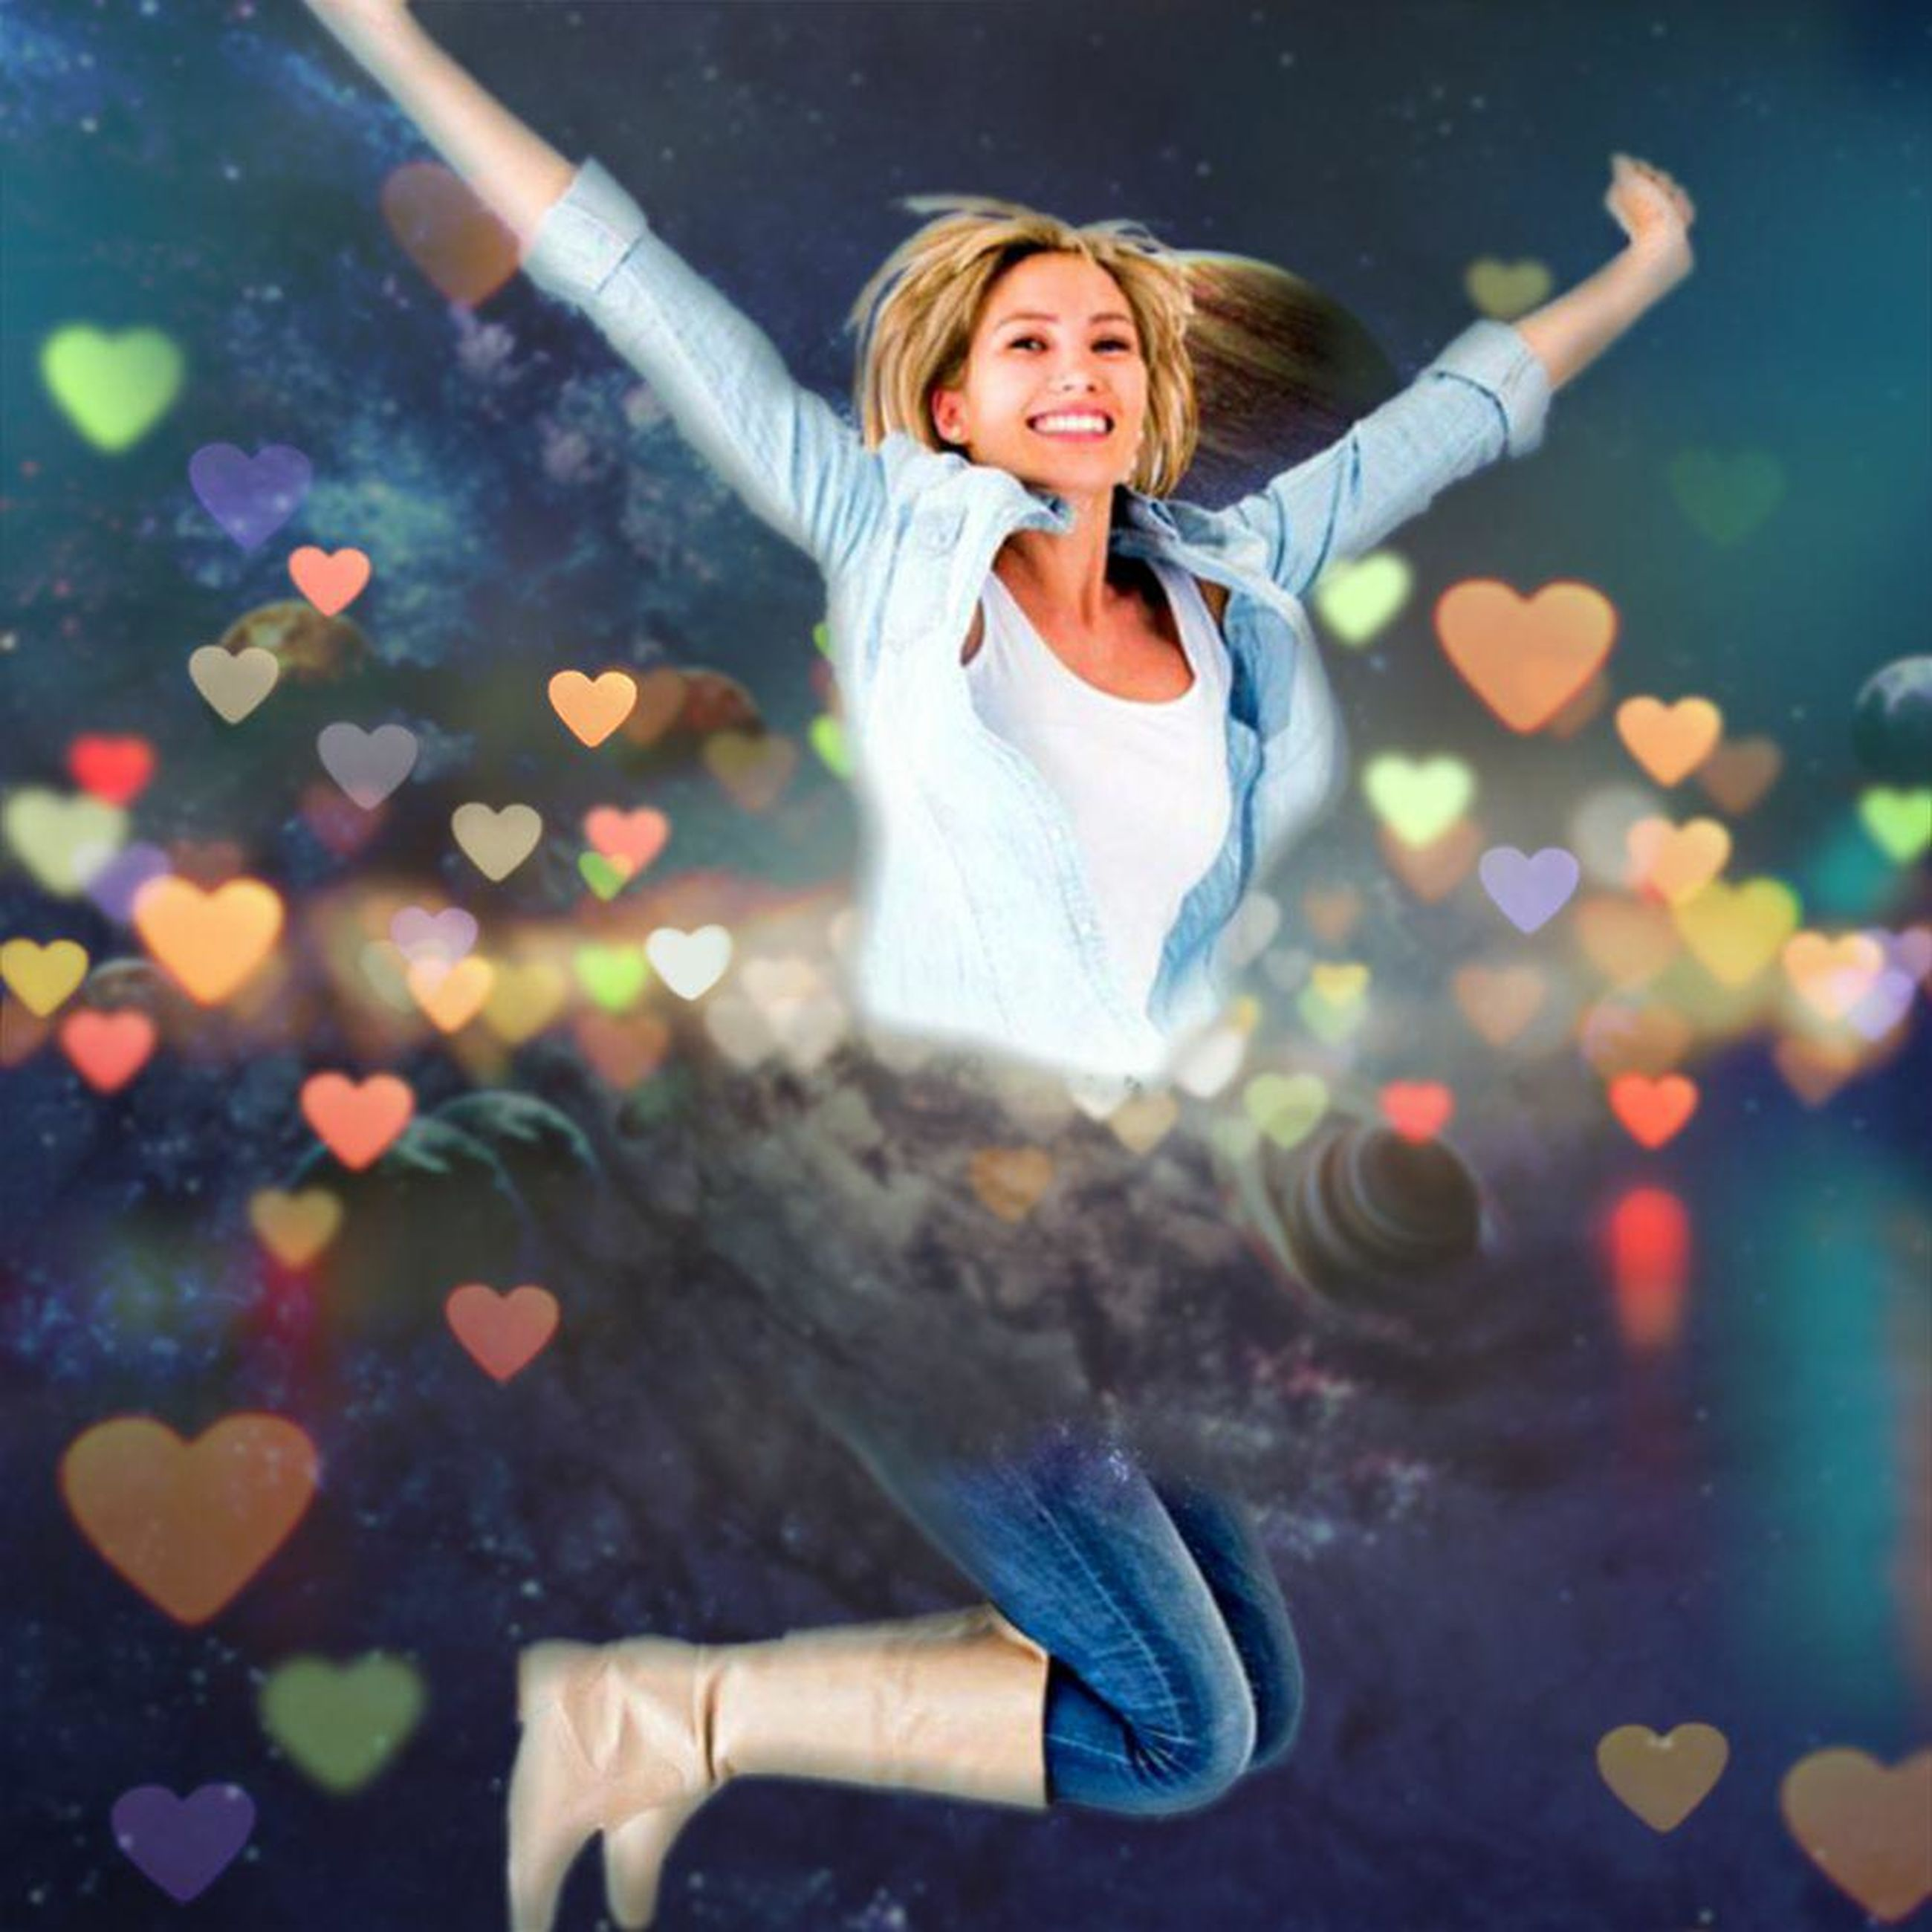 human arm, limb, happiness, one person, emotion, arms raised, human limb, hair, body part, human body part, young adult, smiling, women, fun, casual clothing, young women, blond hair, carefree, positive emotion, arms outstretched, beautiful woman, hairstyle, excitement